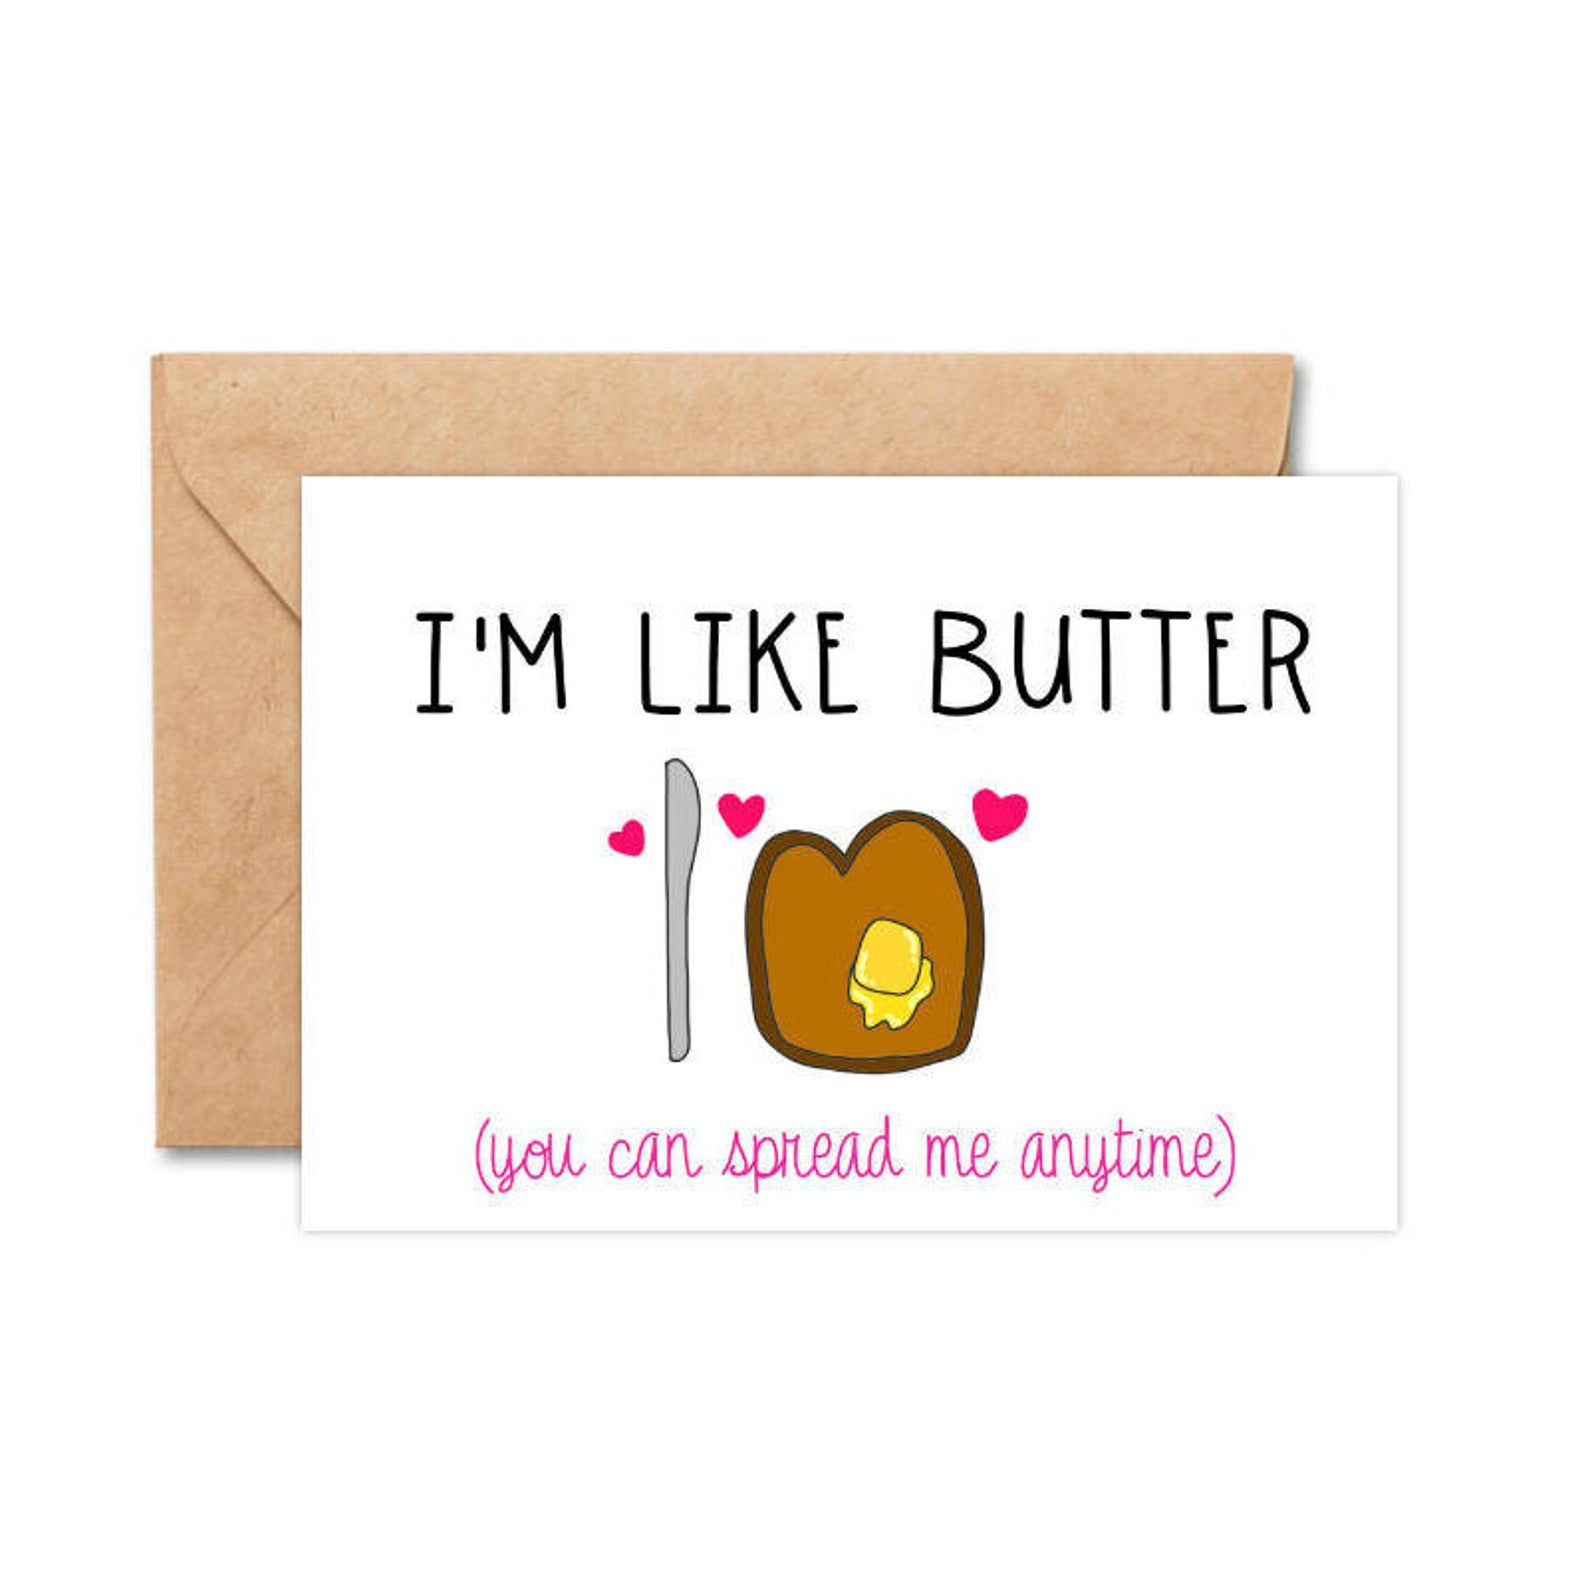 Dirty Valentine Card, Adult Valentine Card, Sexy Valentine, Naughty Valentine's Day Cards, Naughty Cards, Funny Valentine Card For Him